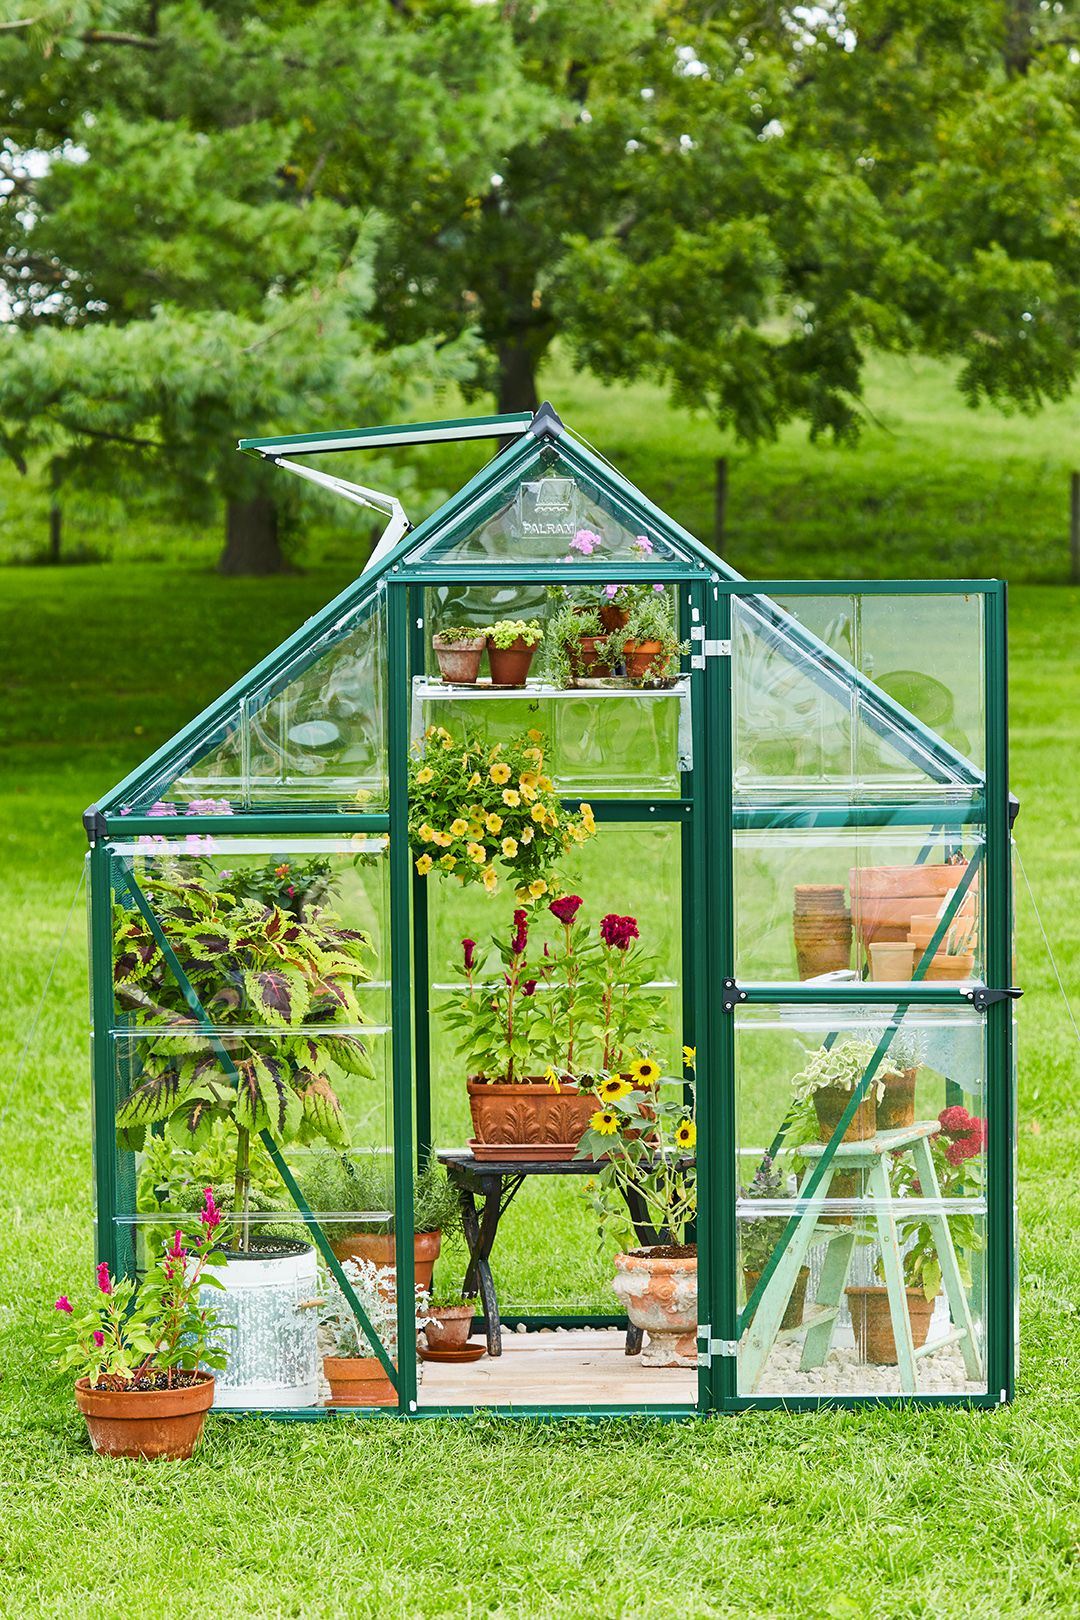 8 Small Greenhouses You Can Build All By Yourself Small Greenhouse Kits Diy Greenhouse Backyard Greenhouse Small backyard greenhouse kit